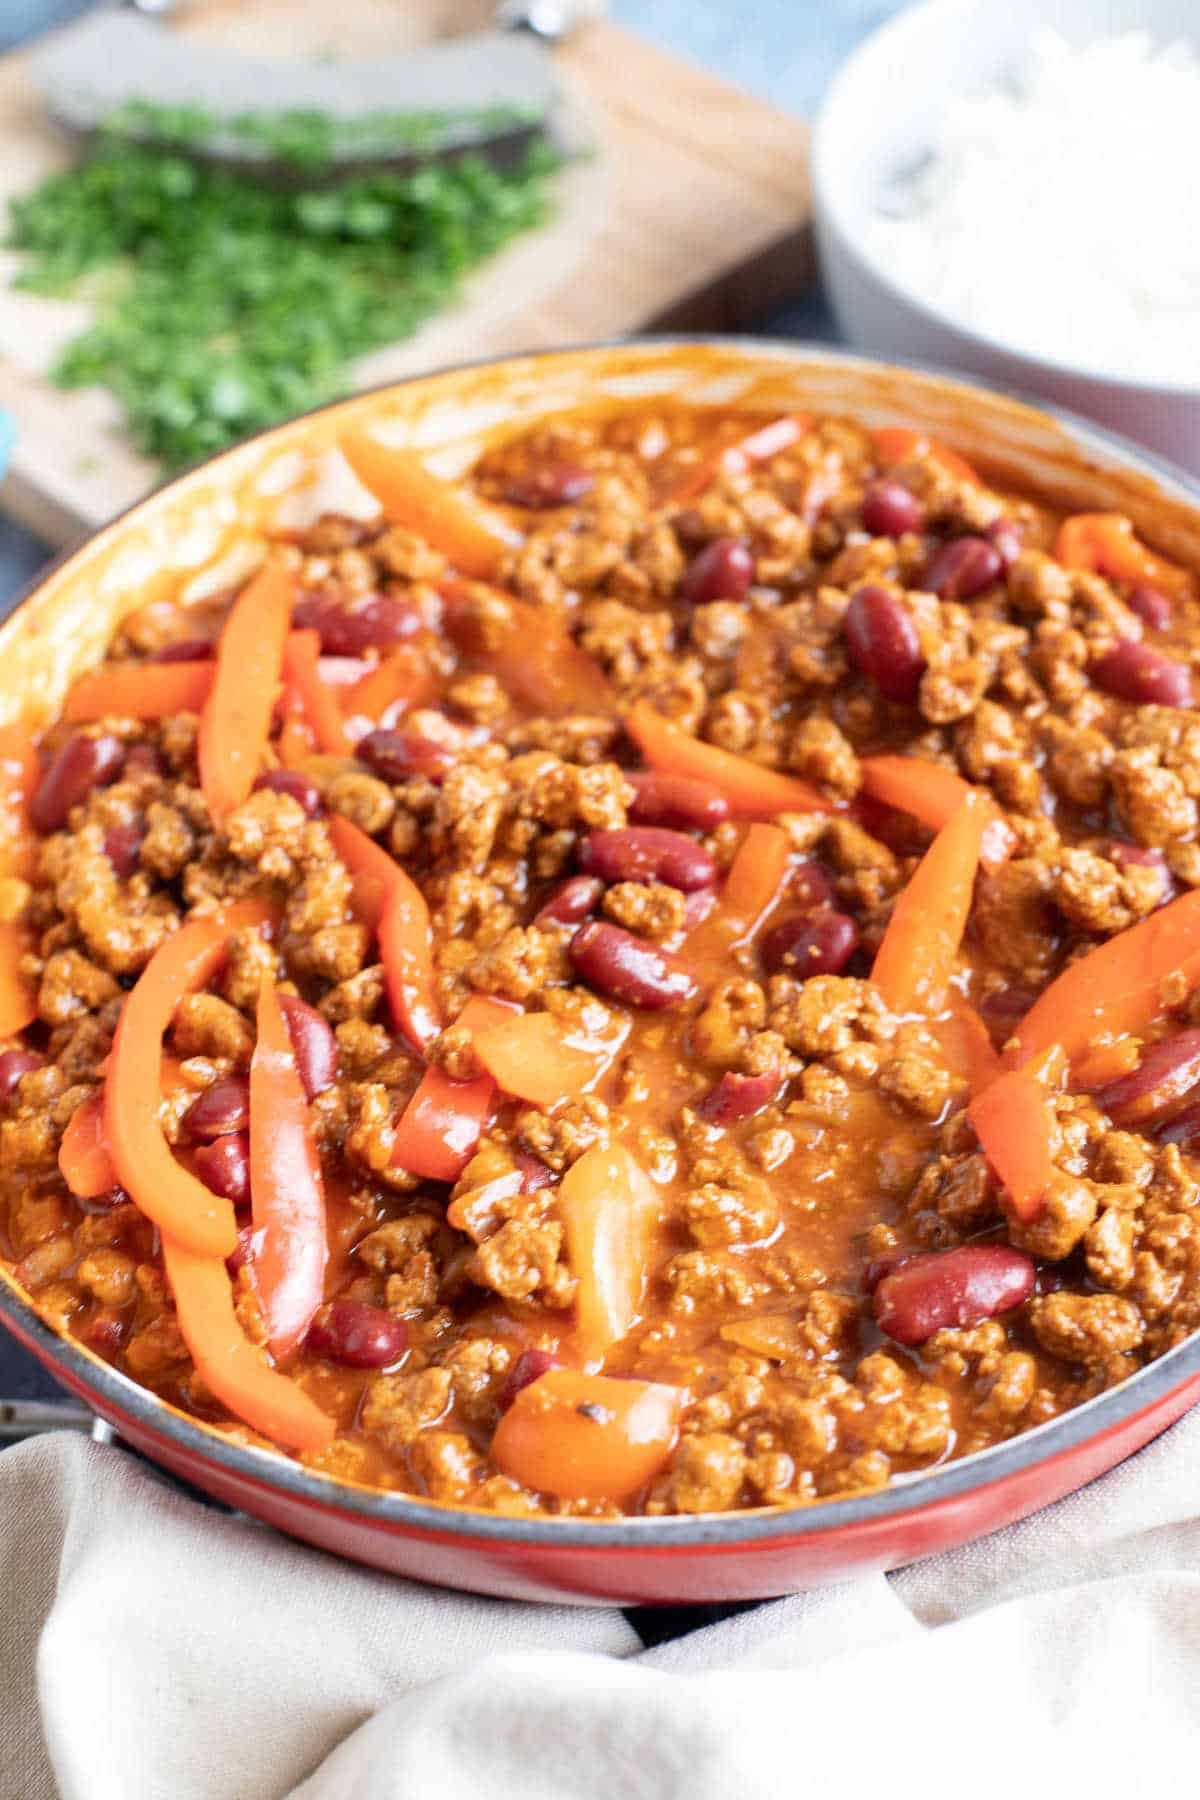 Quorn chilli con carne in a red pan.